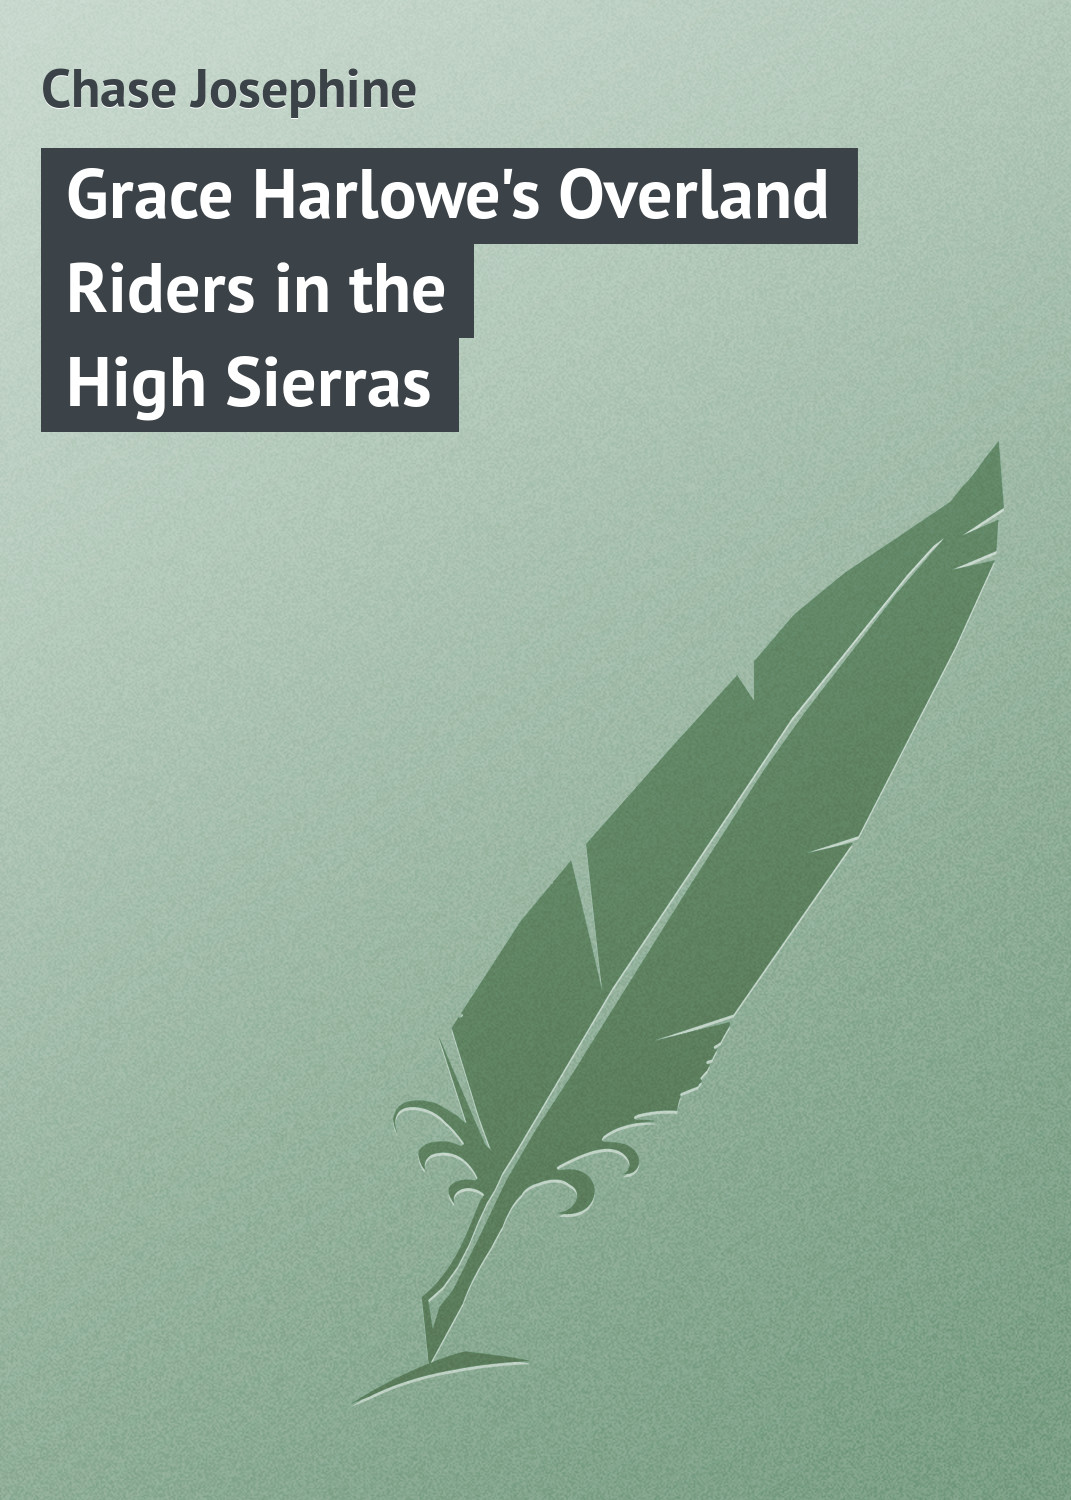 лучшая цена Chase Josephine Grace Harlowe's Overland Riders in the High Sierras